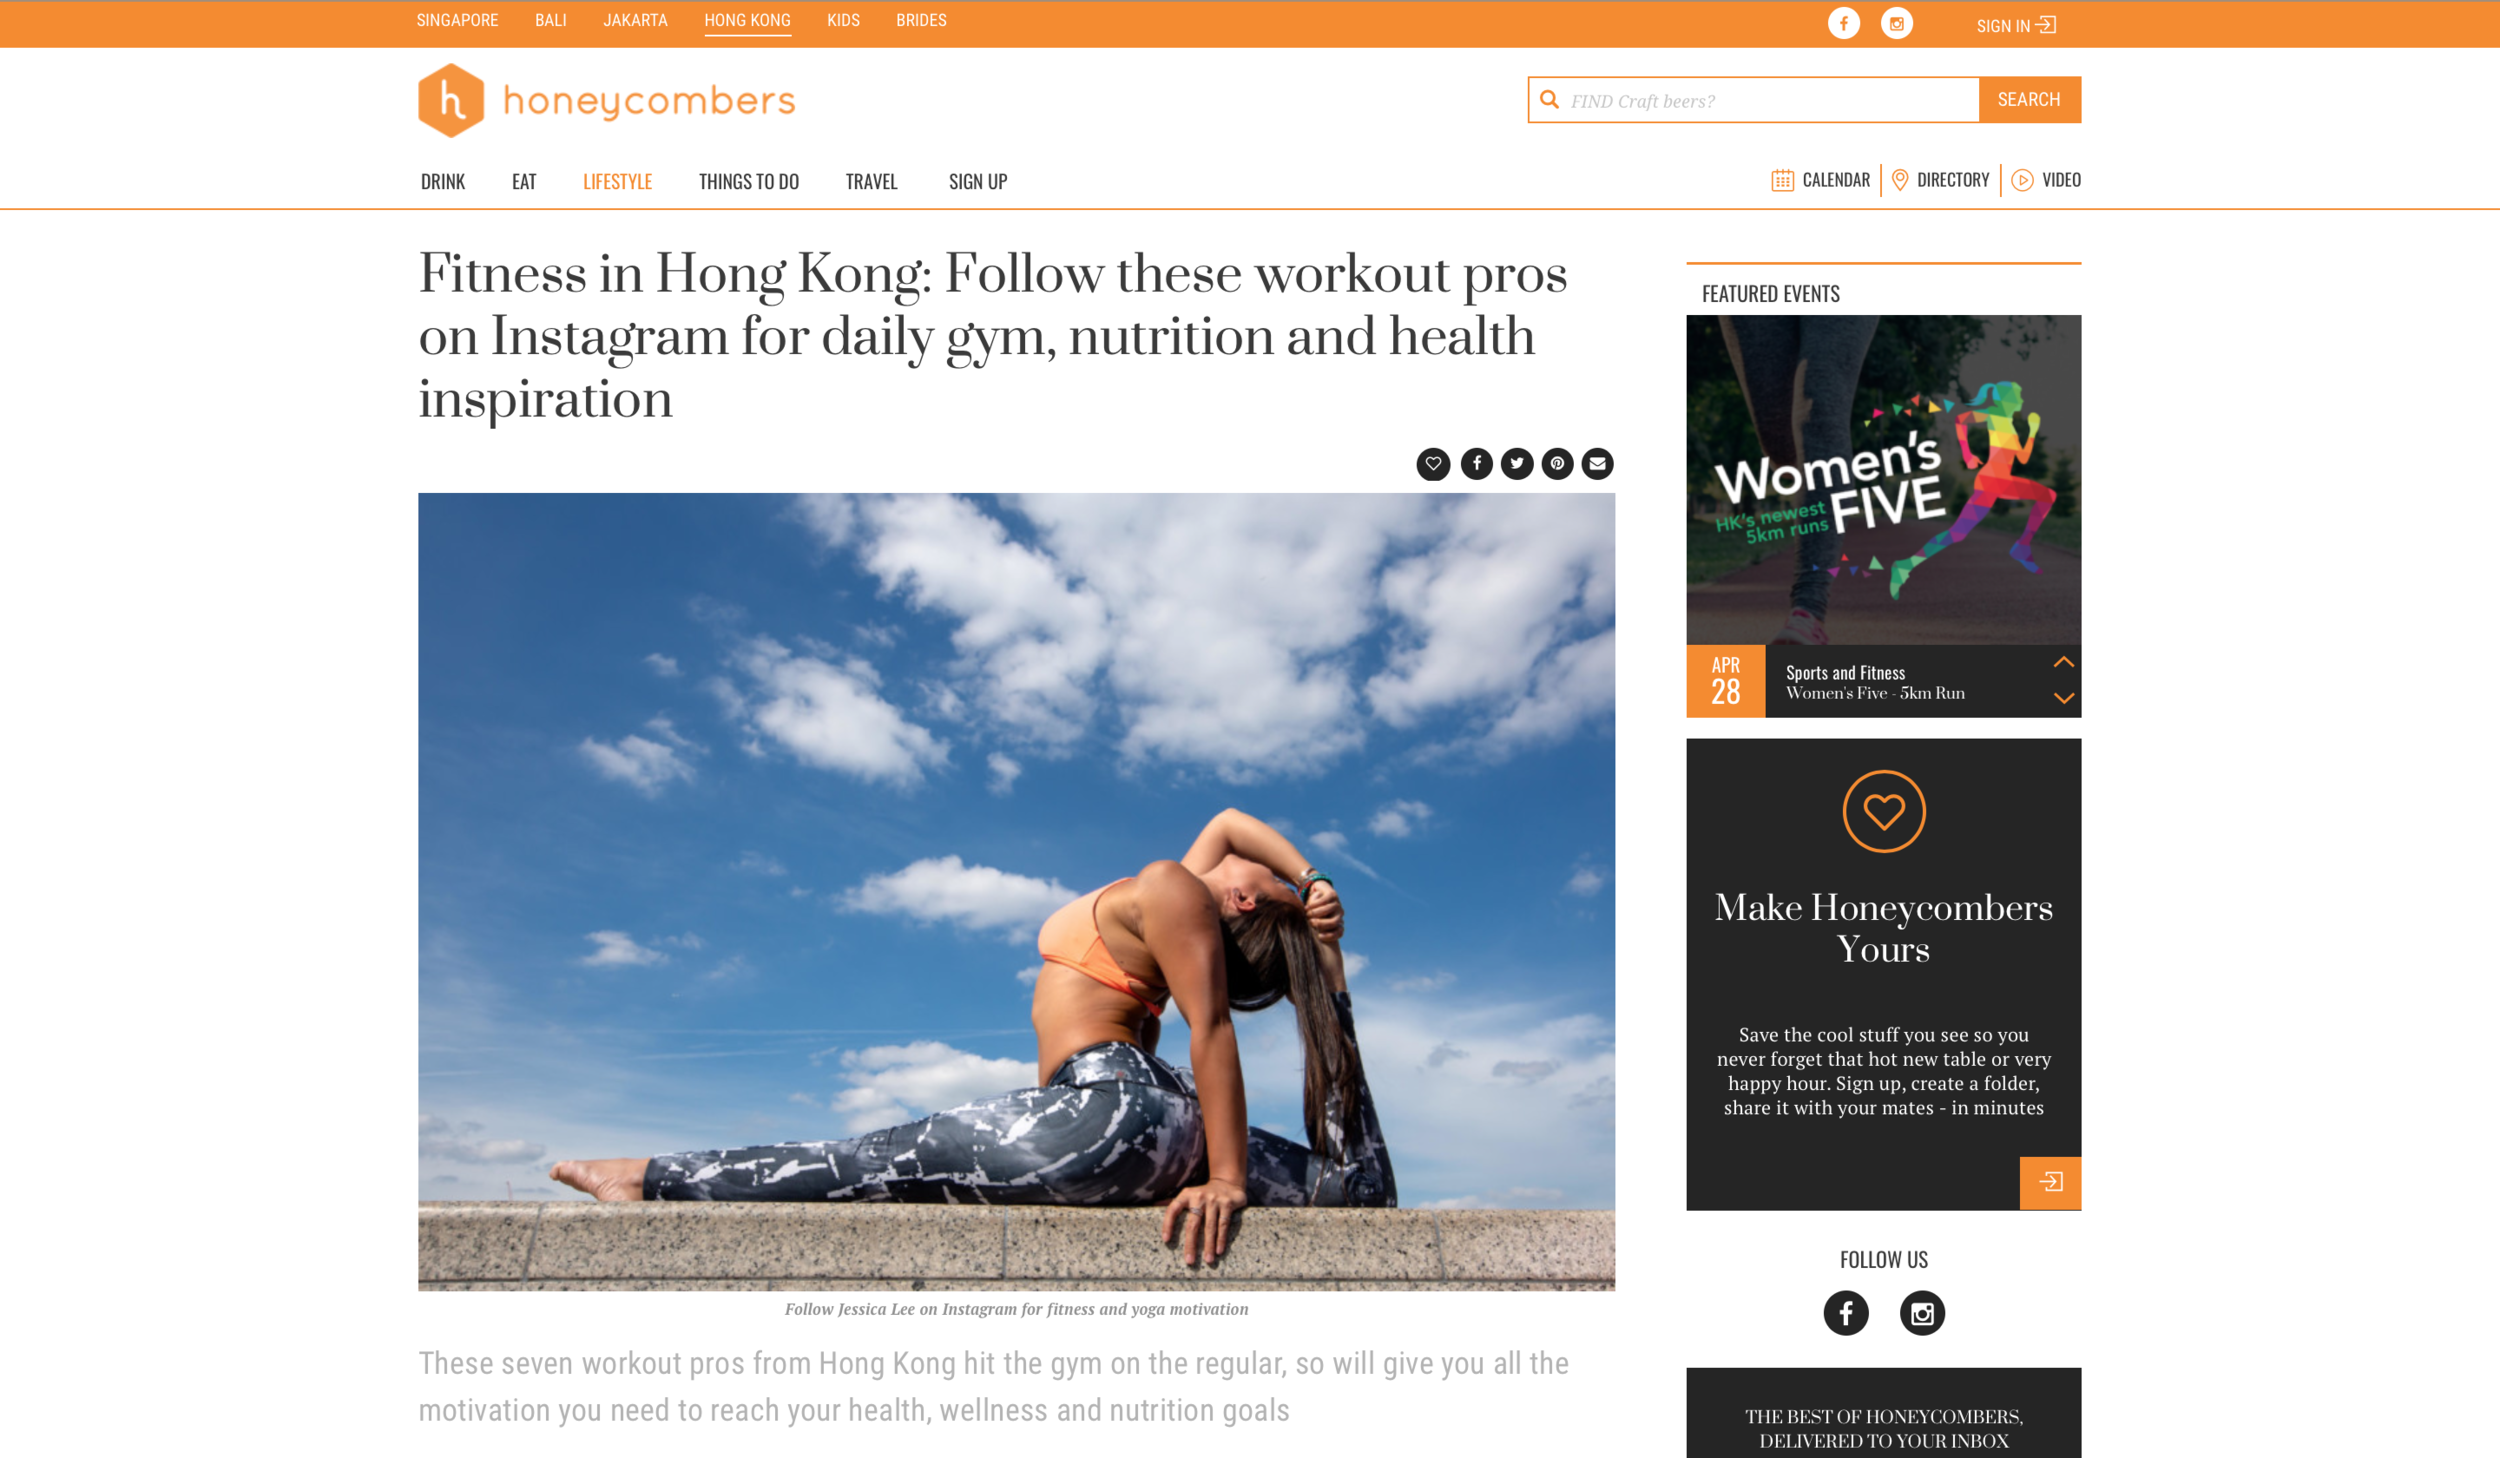 Fitness in Hong Kong - The Honeycombers